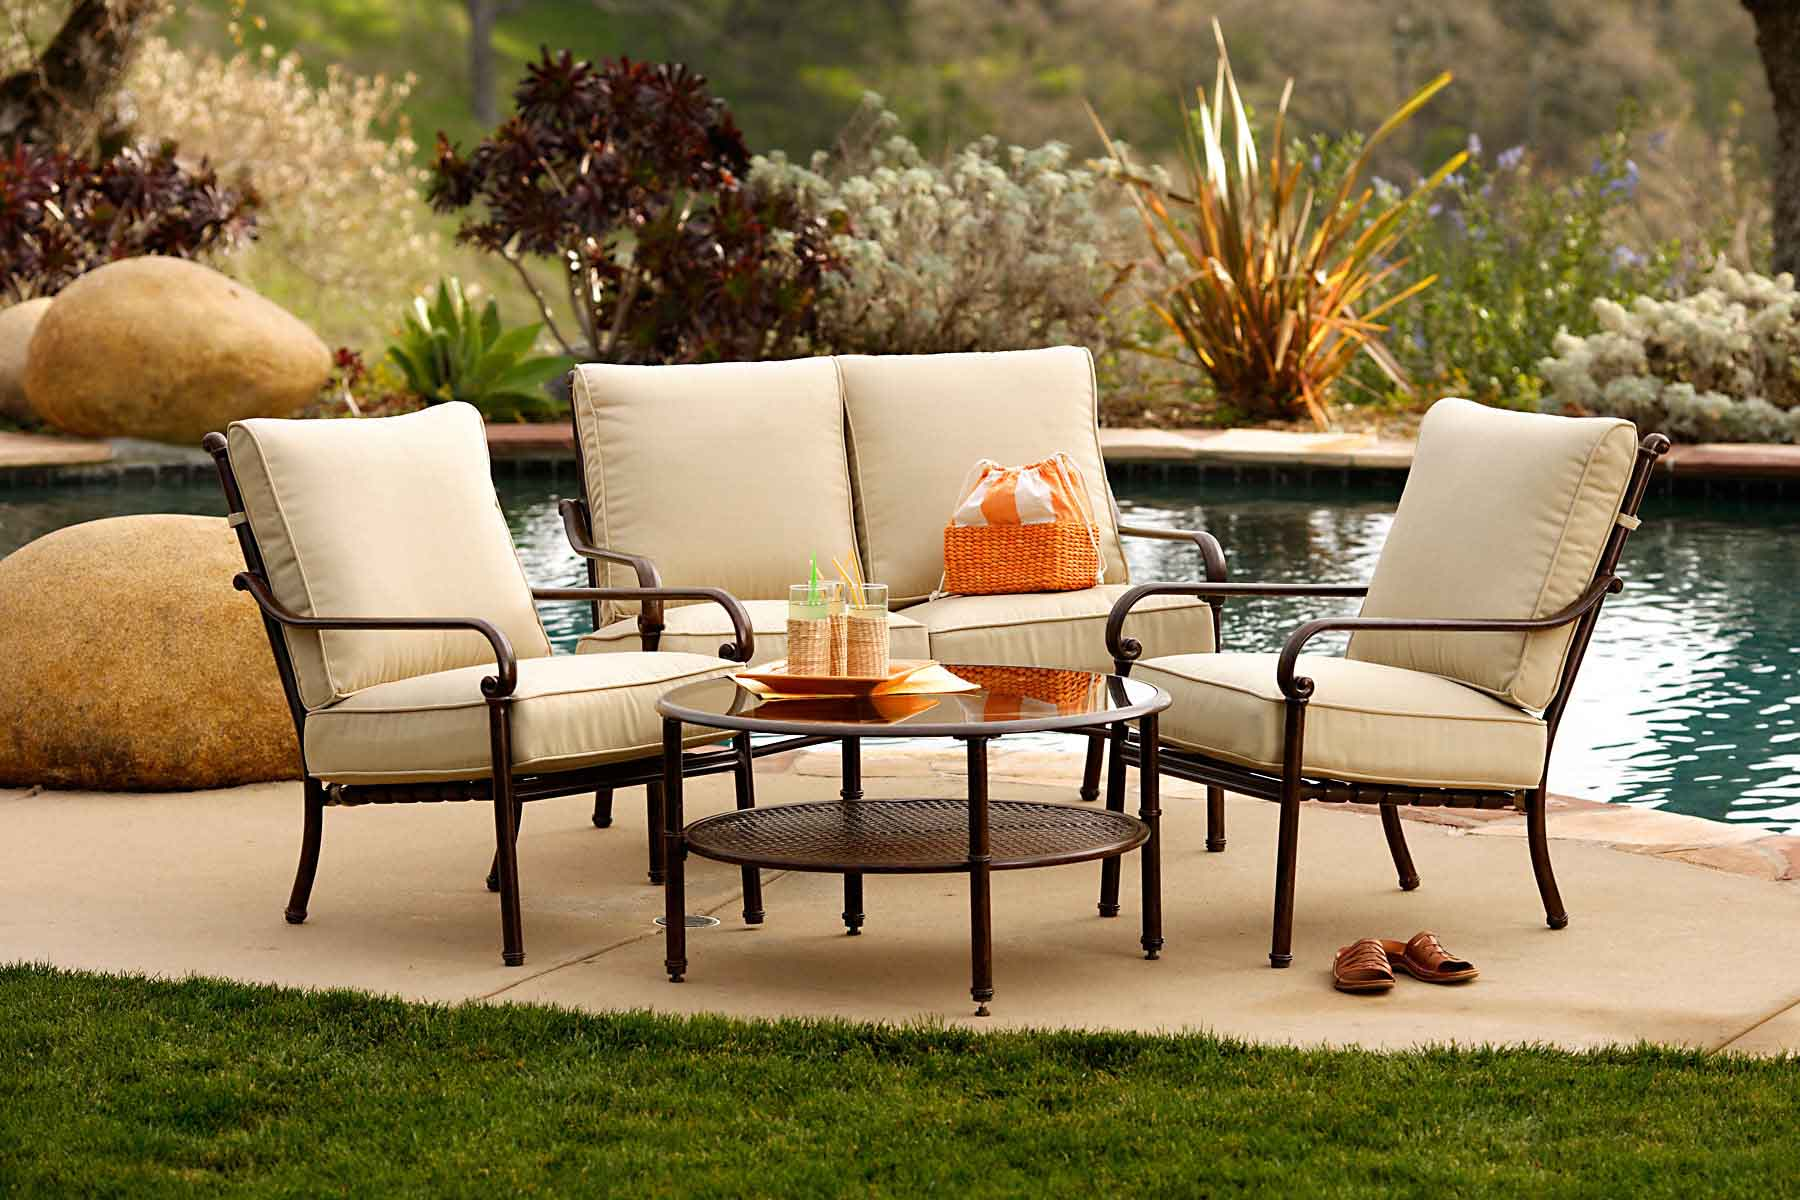 Attractive Patio Furniture | Northville, Michigan U2013 Just Another WordPress Site